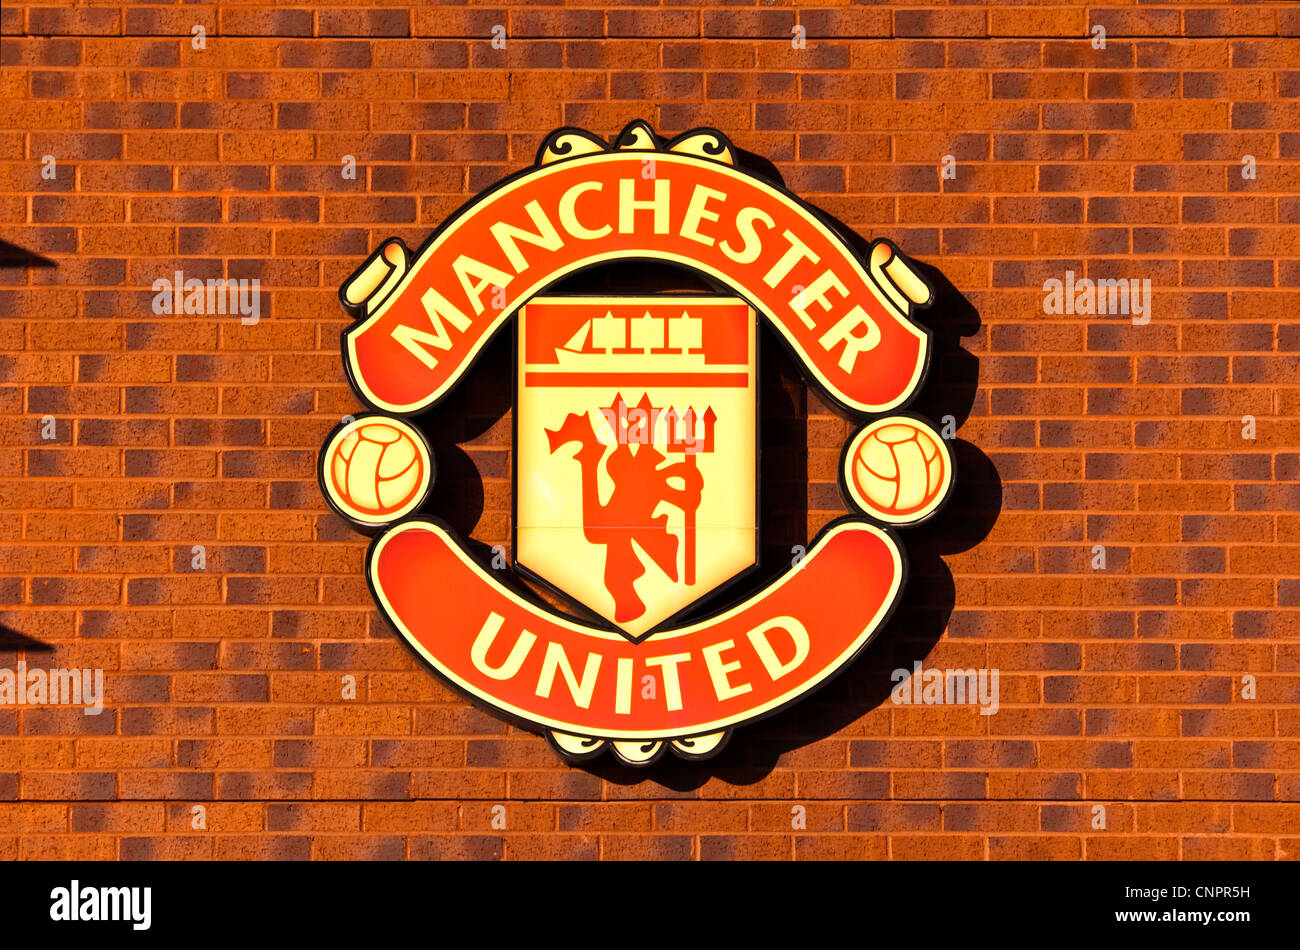 Manchester United emblem on the wall outside the United store, Old Trafford, Manchester, England, UK - Stock Image